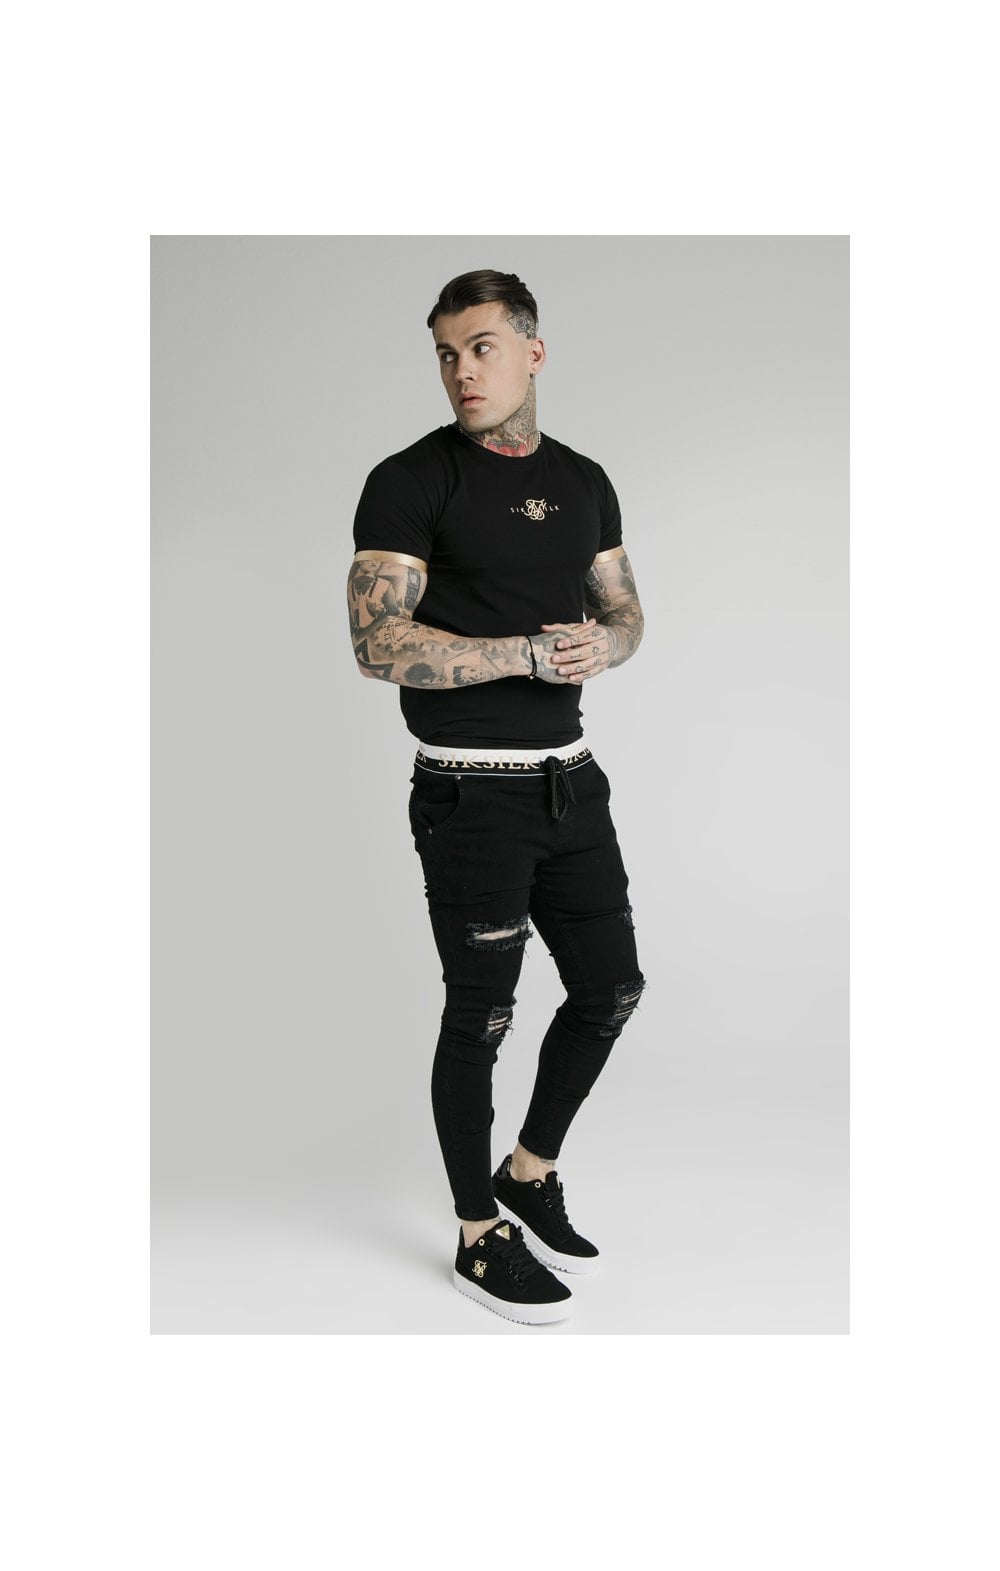 SikSilk S/S Inset Cuff Gym Tee – Black & Gold (2)